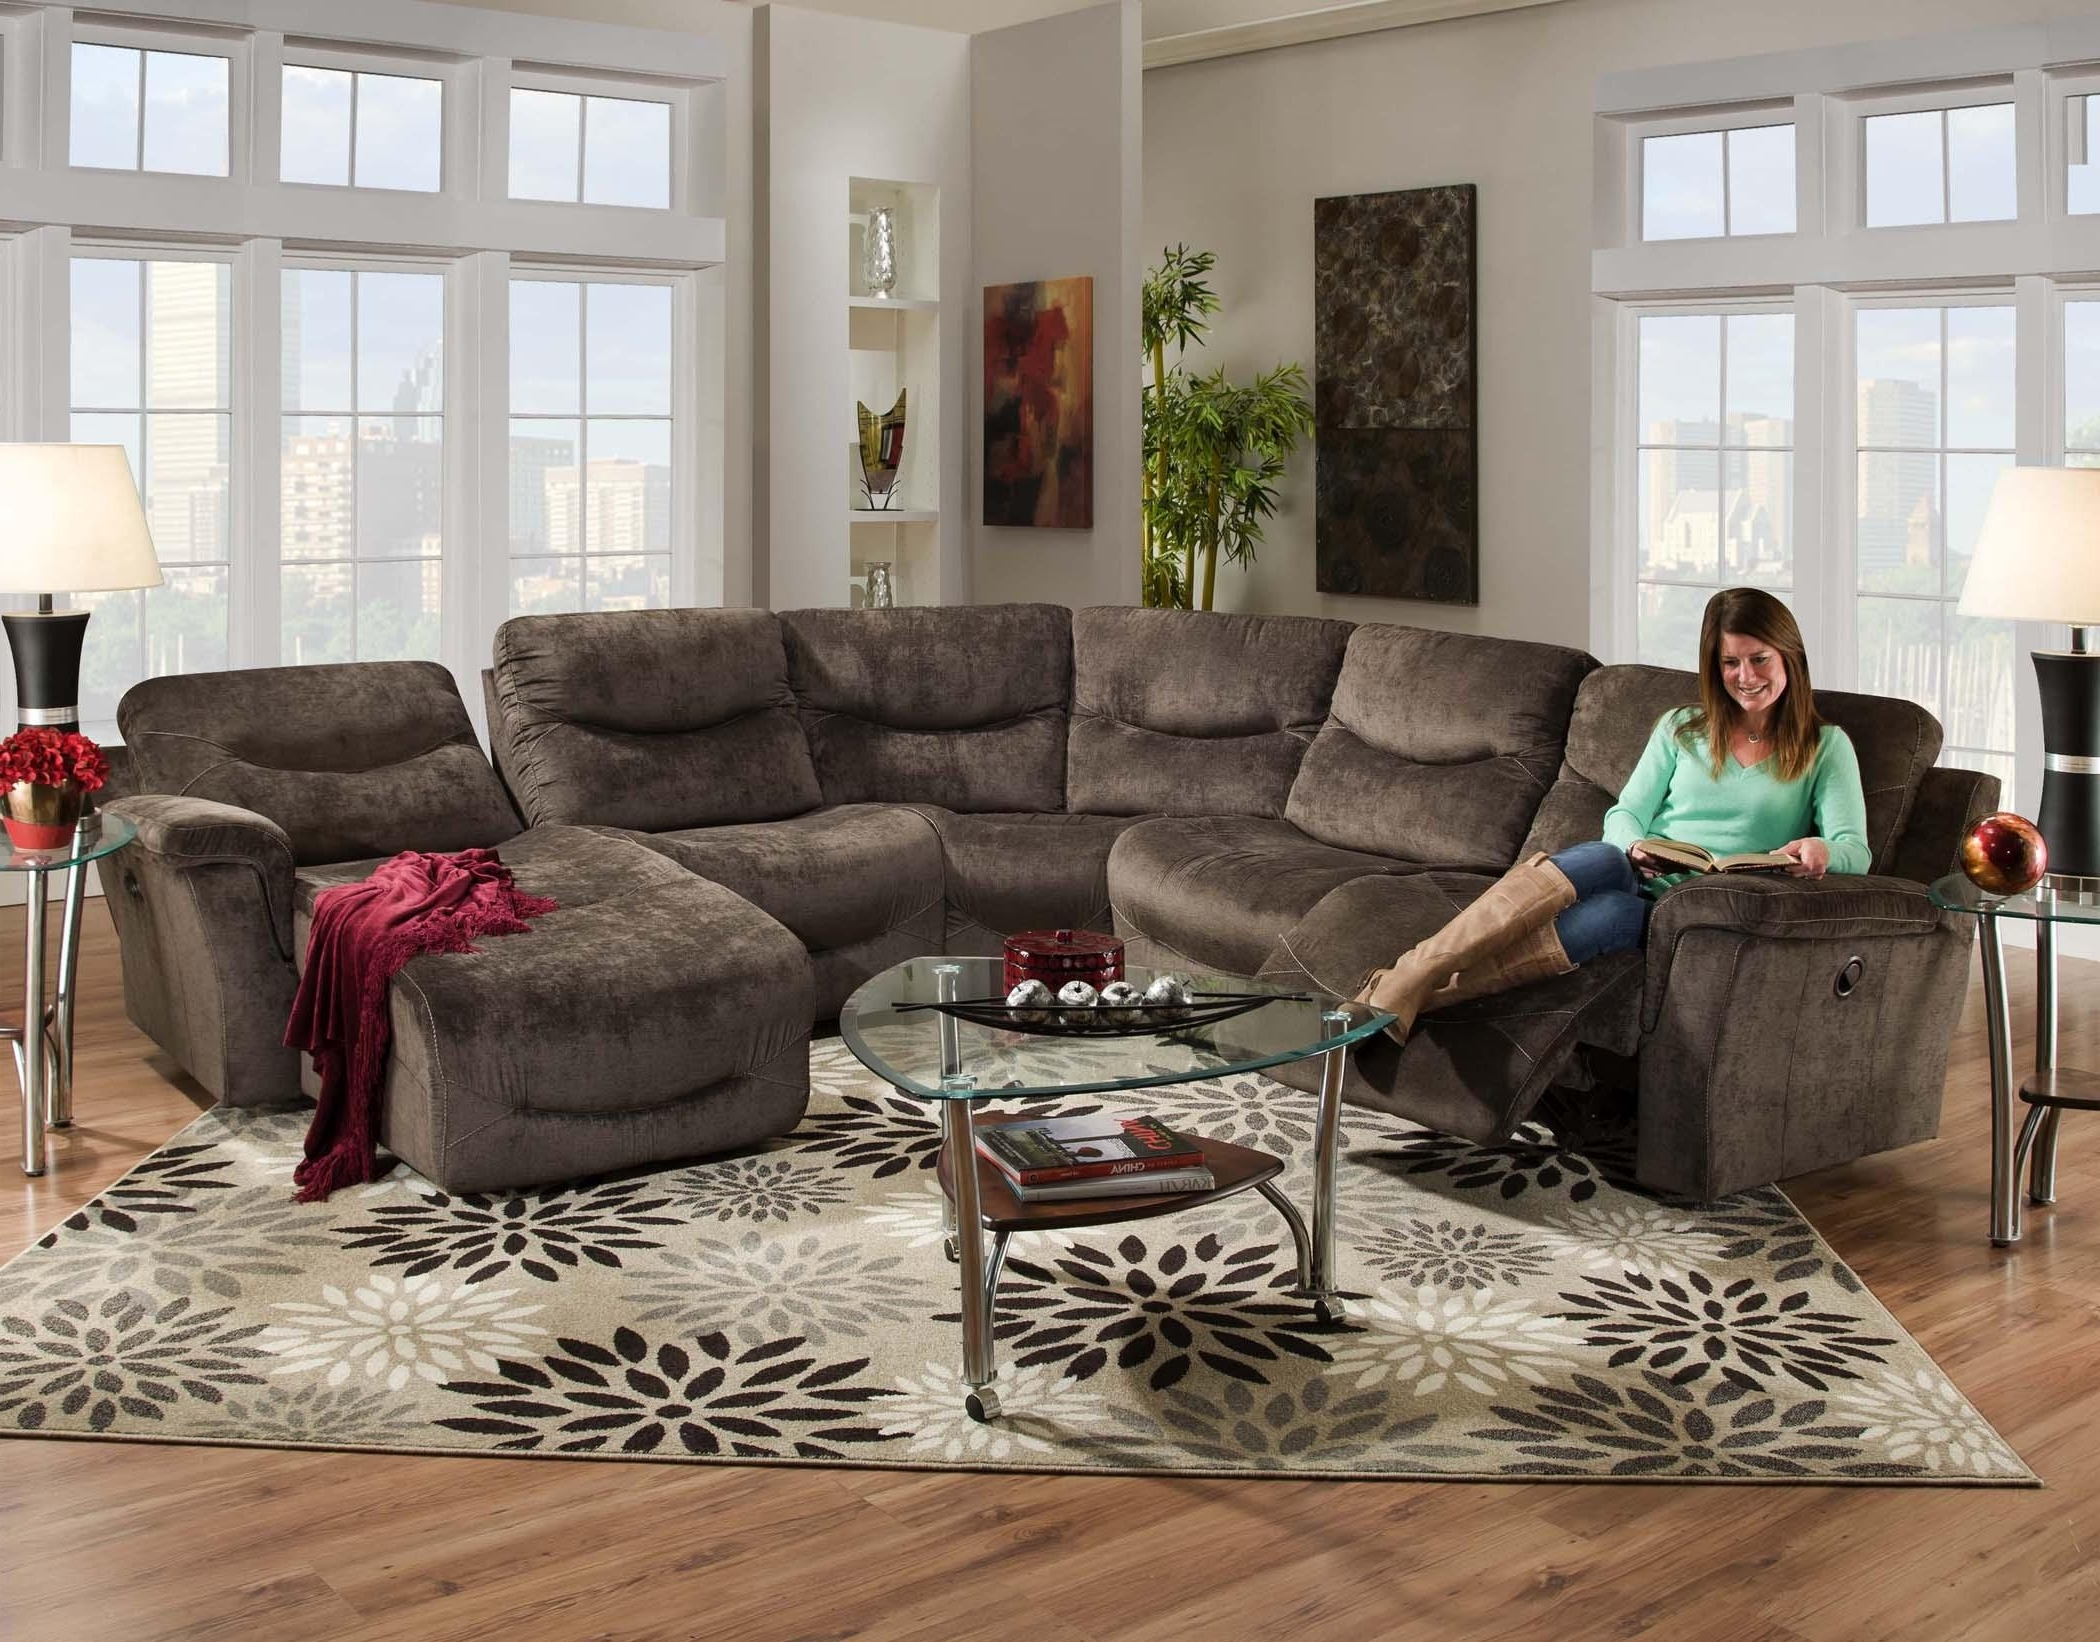 5 Pc Toletta Ii Collection Granite Colored Fabric Sectional Sofa For Most Current Sofas With Consoles (View 3 of 20)